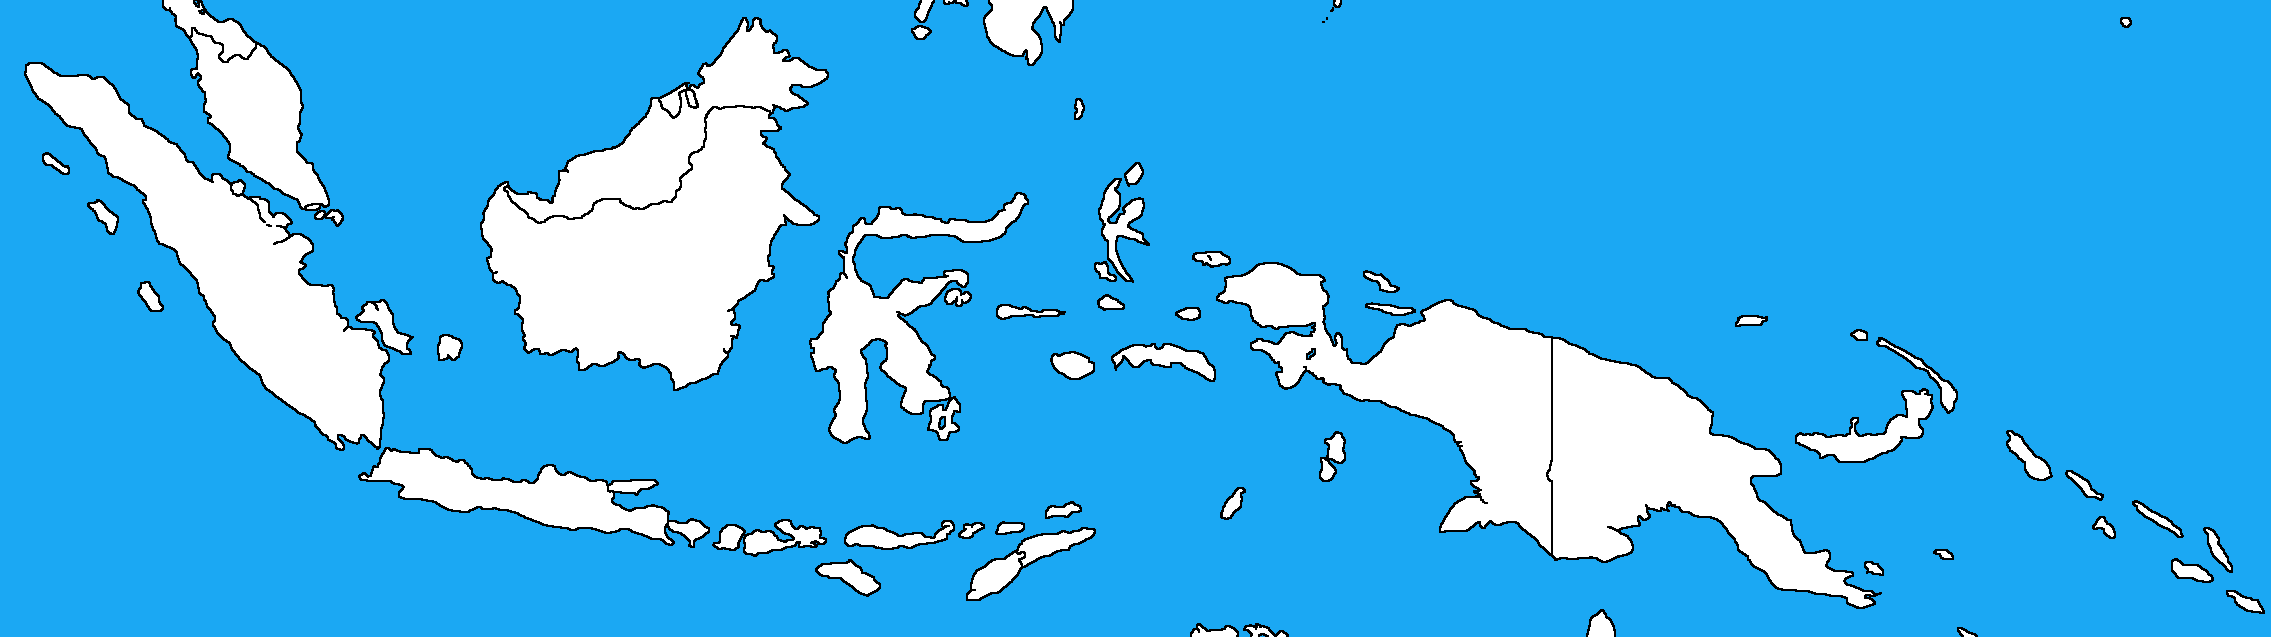 Blank Map Of Indonesia V By DinoSpain On DeviantArt - Indonesia political map